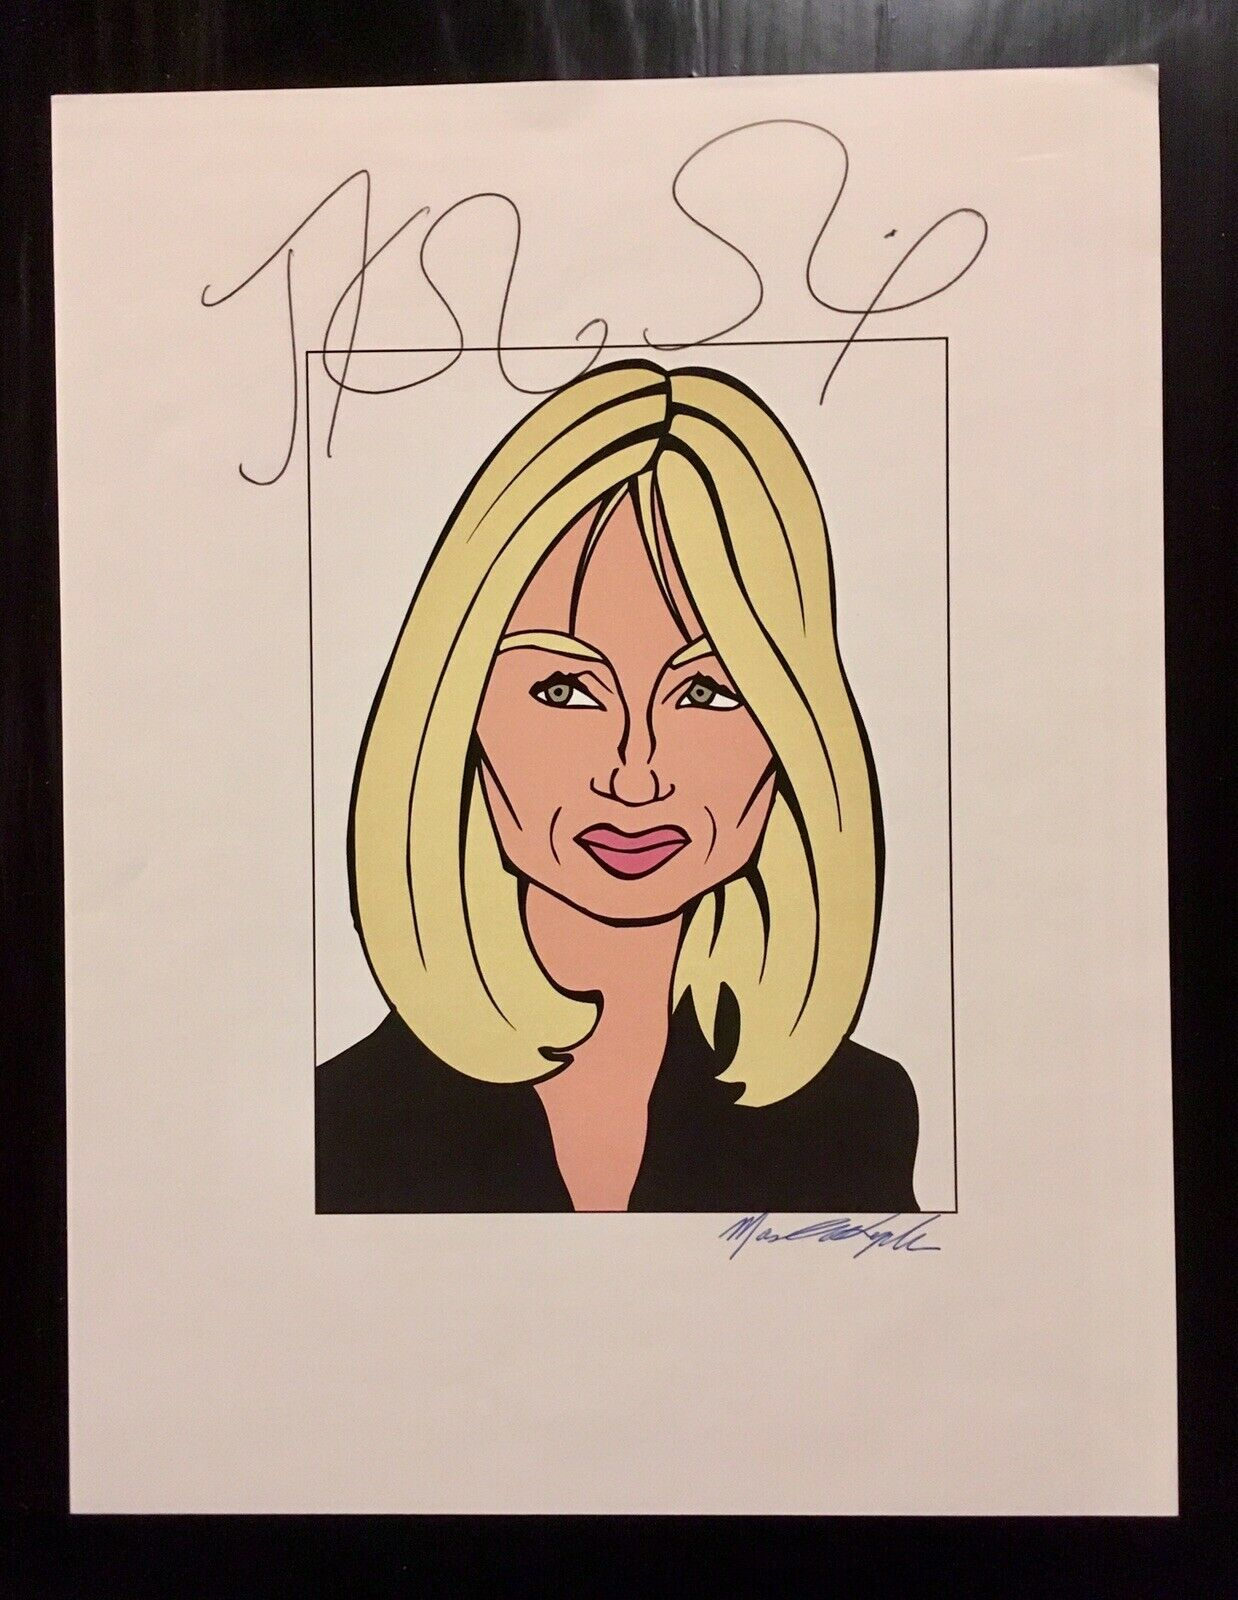 JK Rowling Forgery sold on ebay by newmanwolftraders